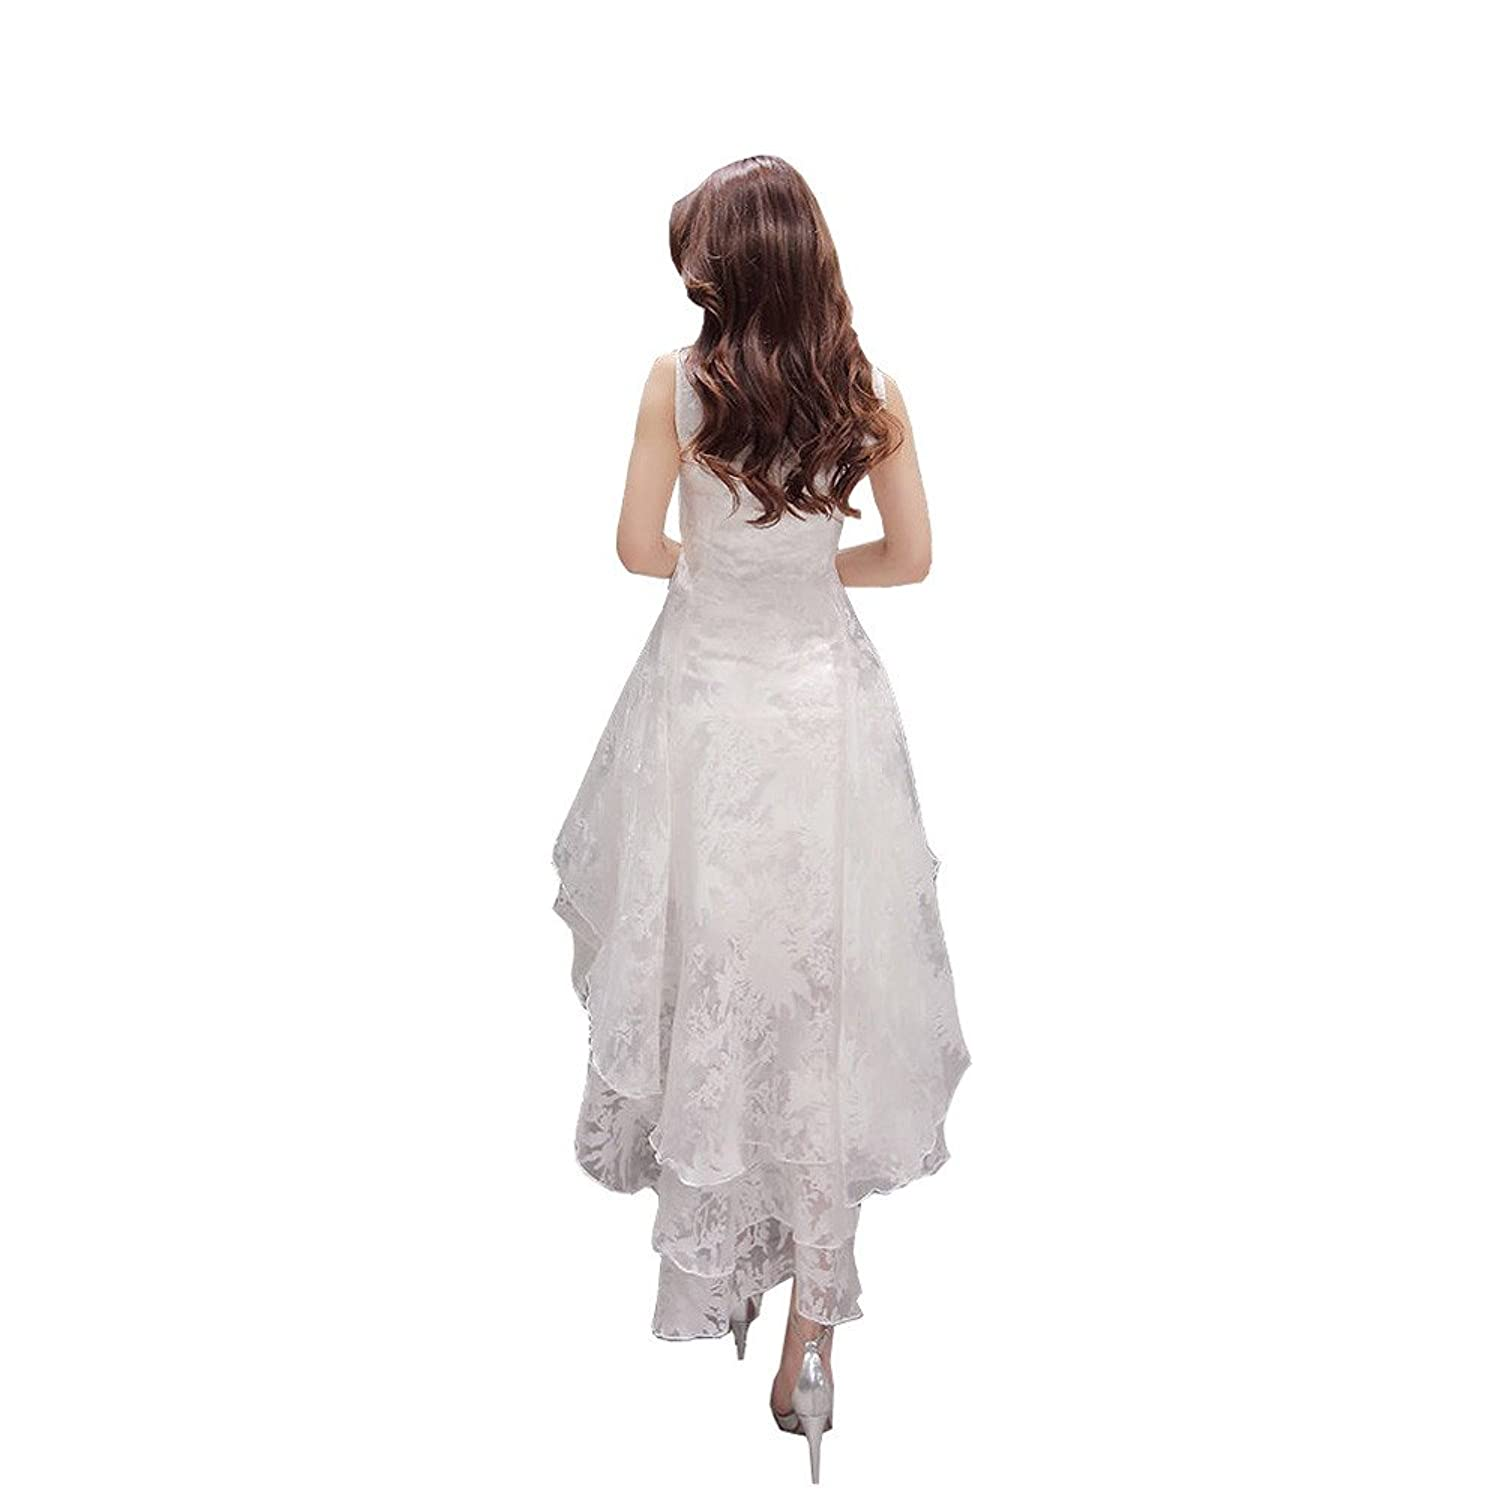 BIUBIUboom Women Organza Sweet Dresses White High Low Evening Party Maxi  Dress: Amazon.co.uk: Clothing